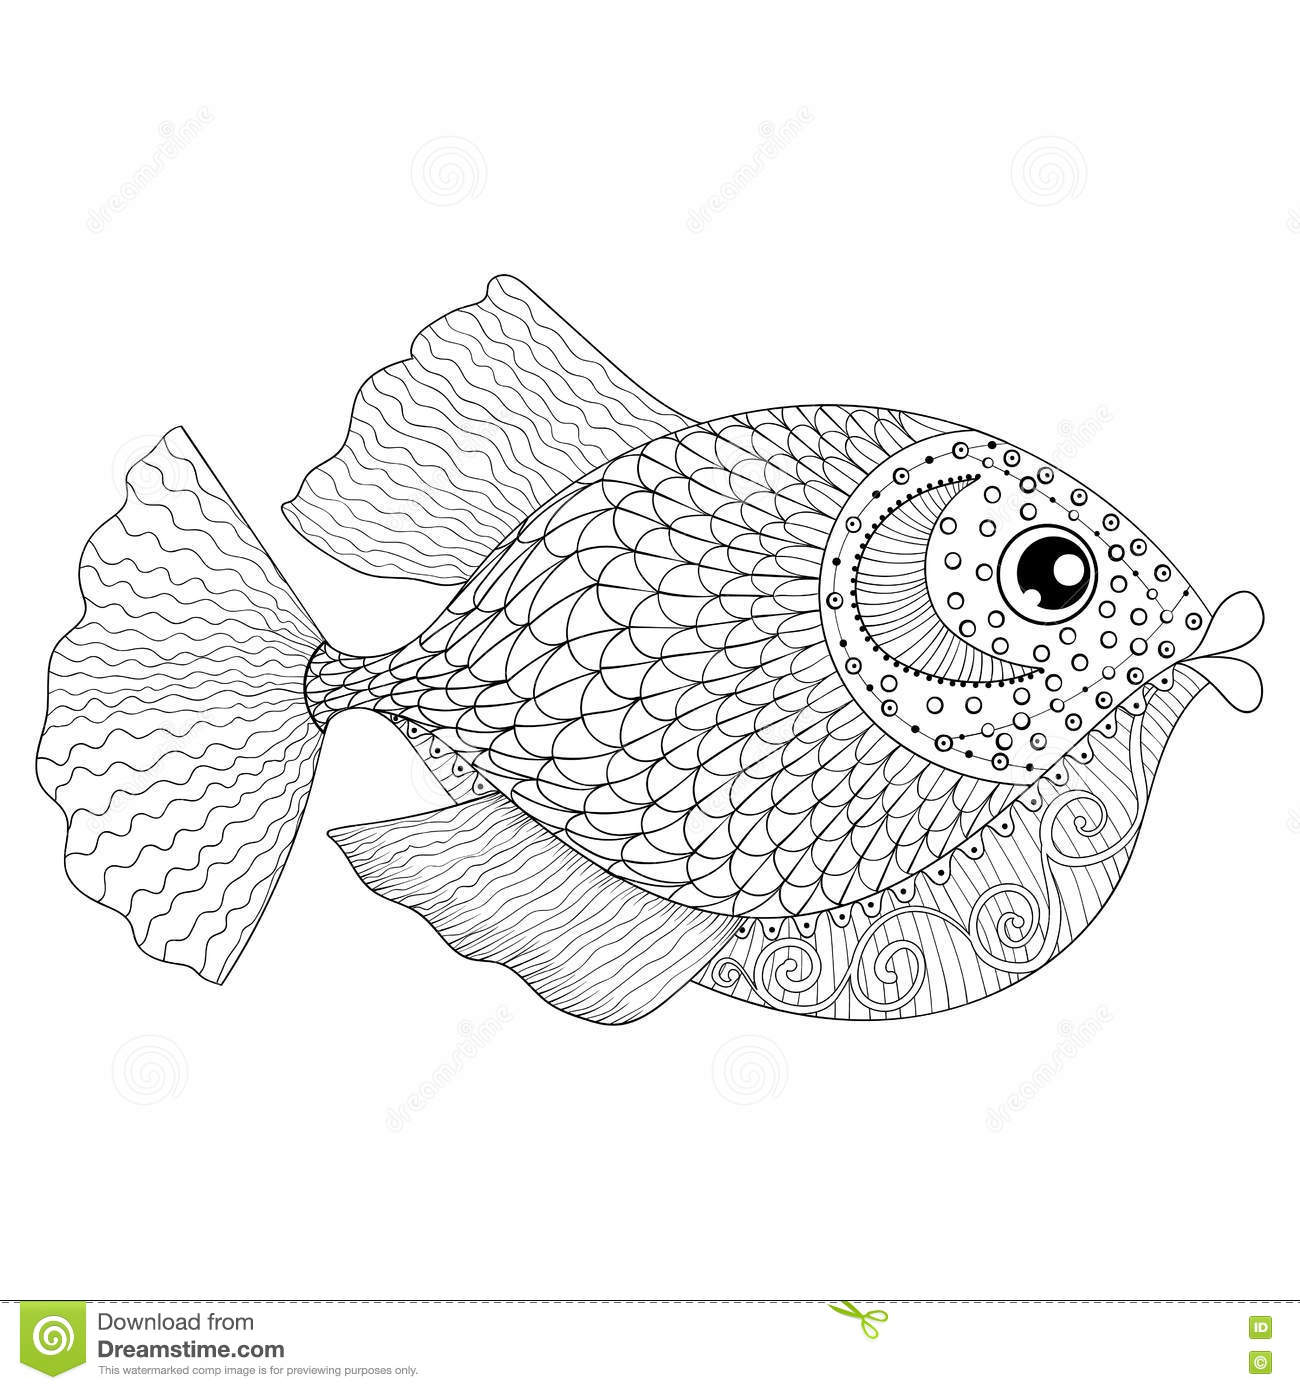 Hand drawn zentangle fish for adult anti stress coloring for Adult fish coloring pages